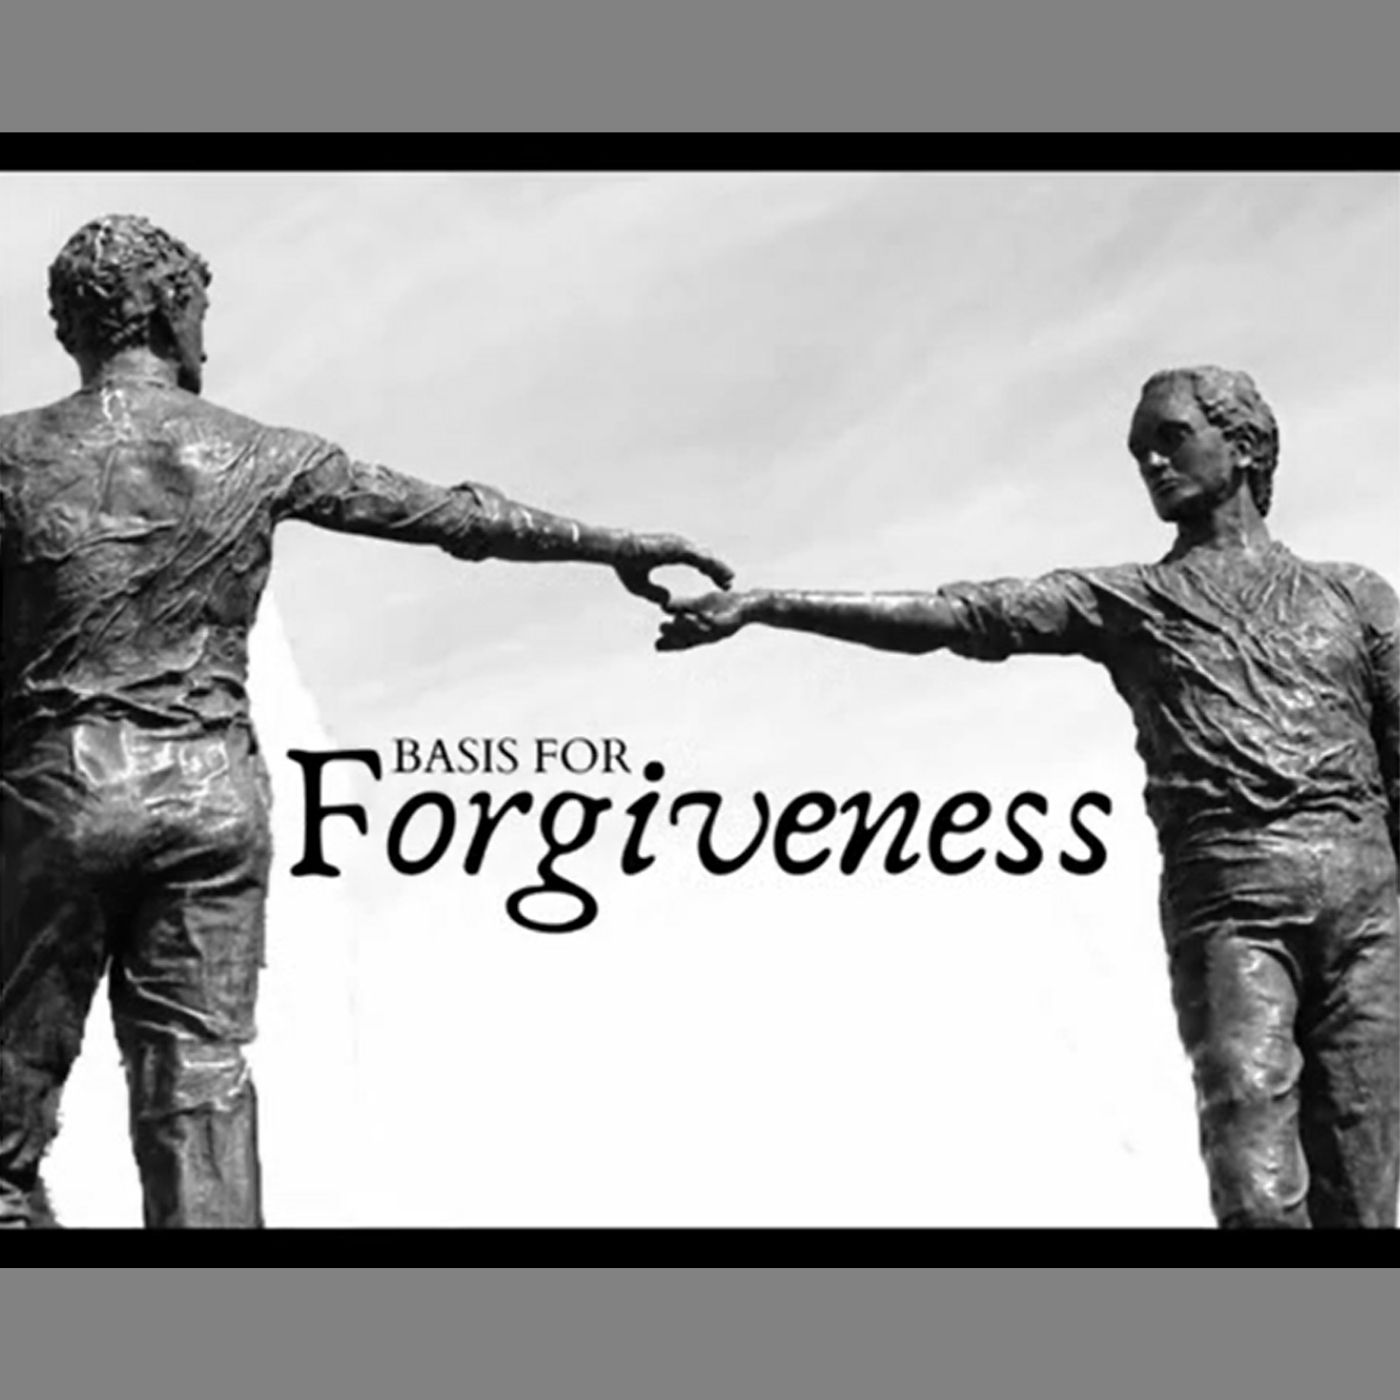 CD cover Basis for Forgiveness.jpg